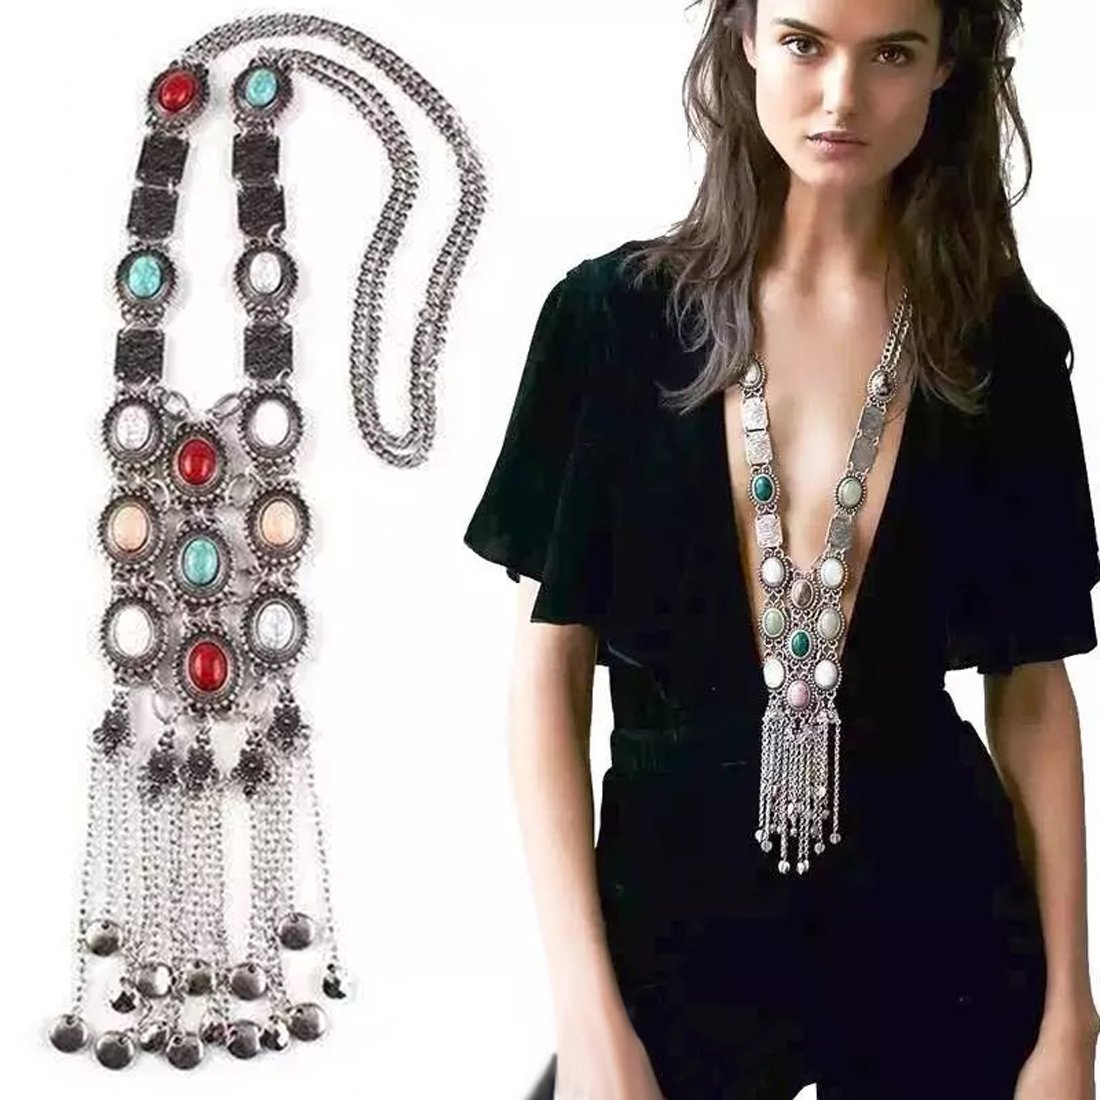 Tpocean Vintage Retro Rhinestone Silver Gold Turquoise Long Boho Bohemian Statement Ethnic Tribal Necklace for Women